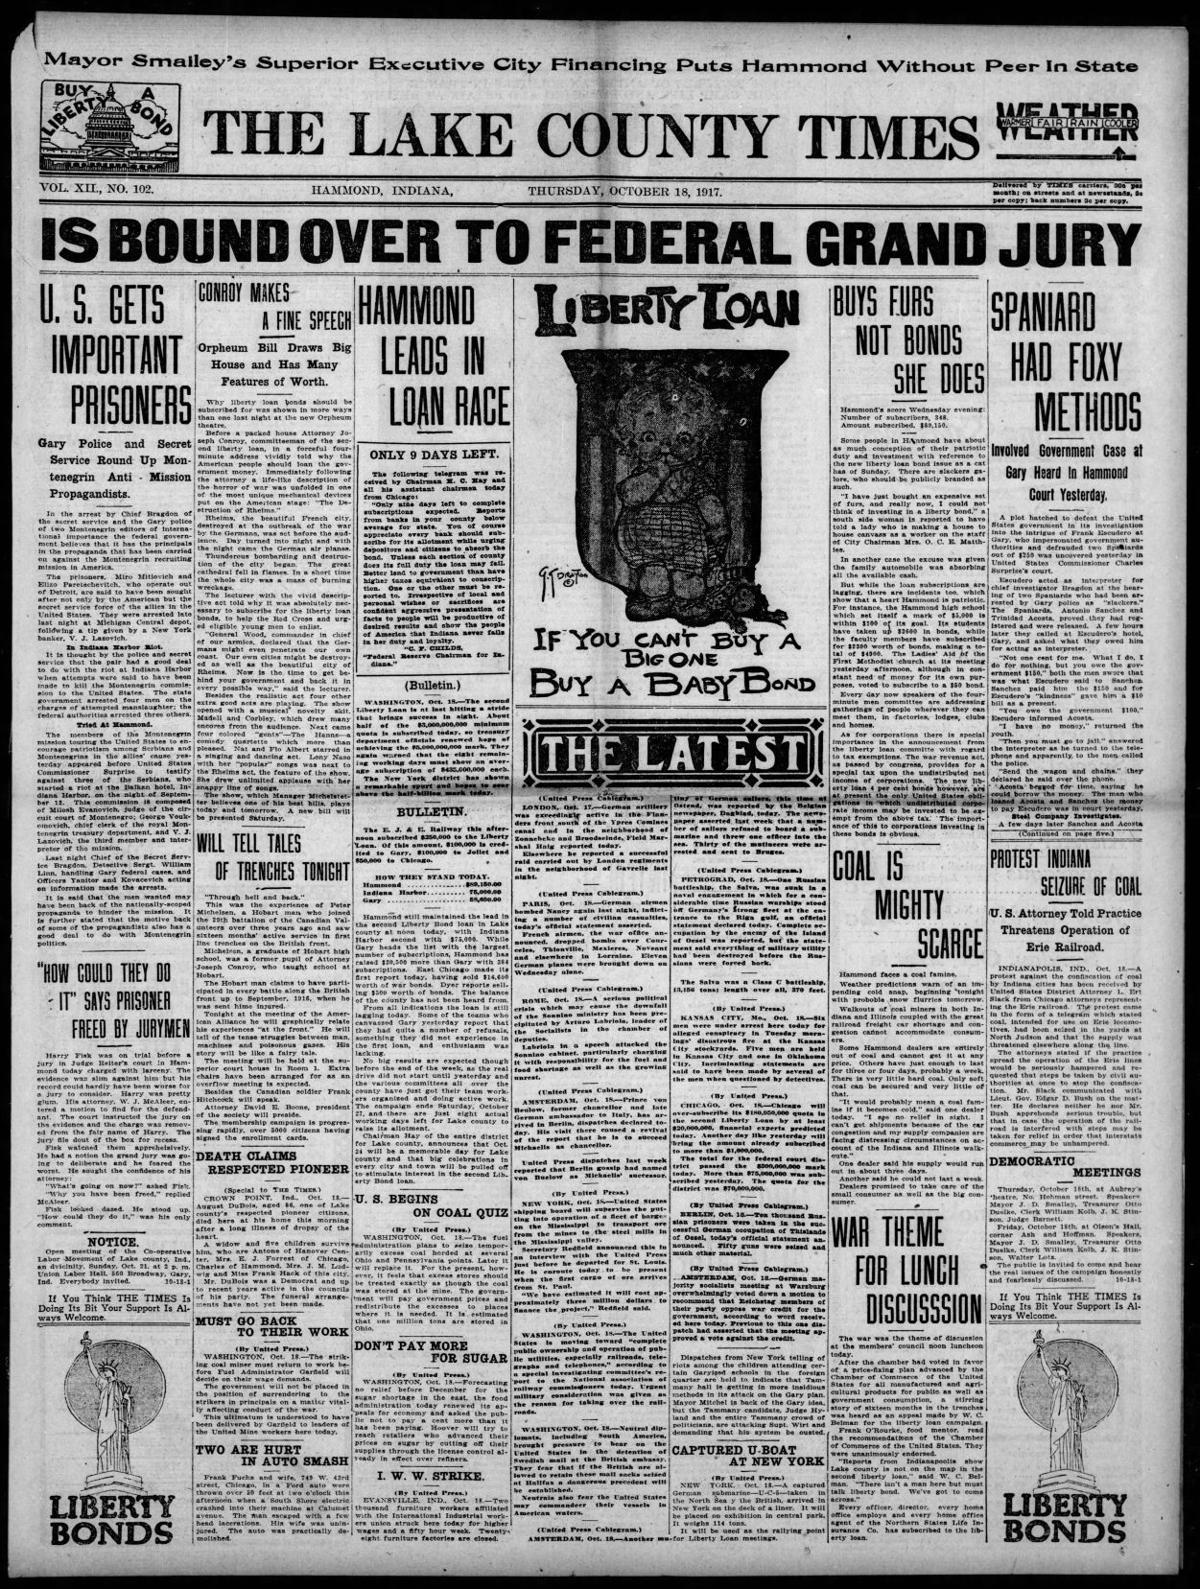 Oct. 18, 1917: Is Bound Over To Federal Grand Jury